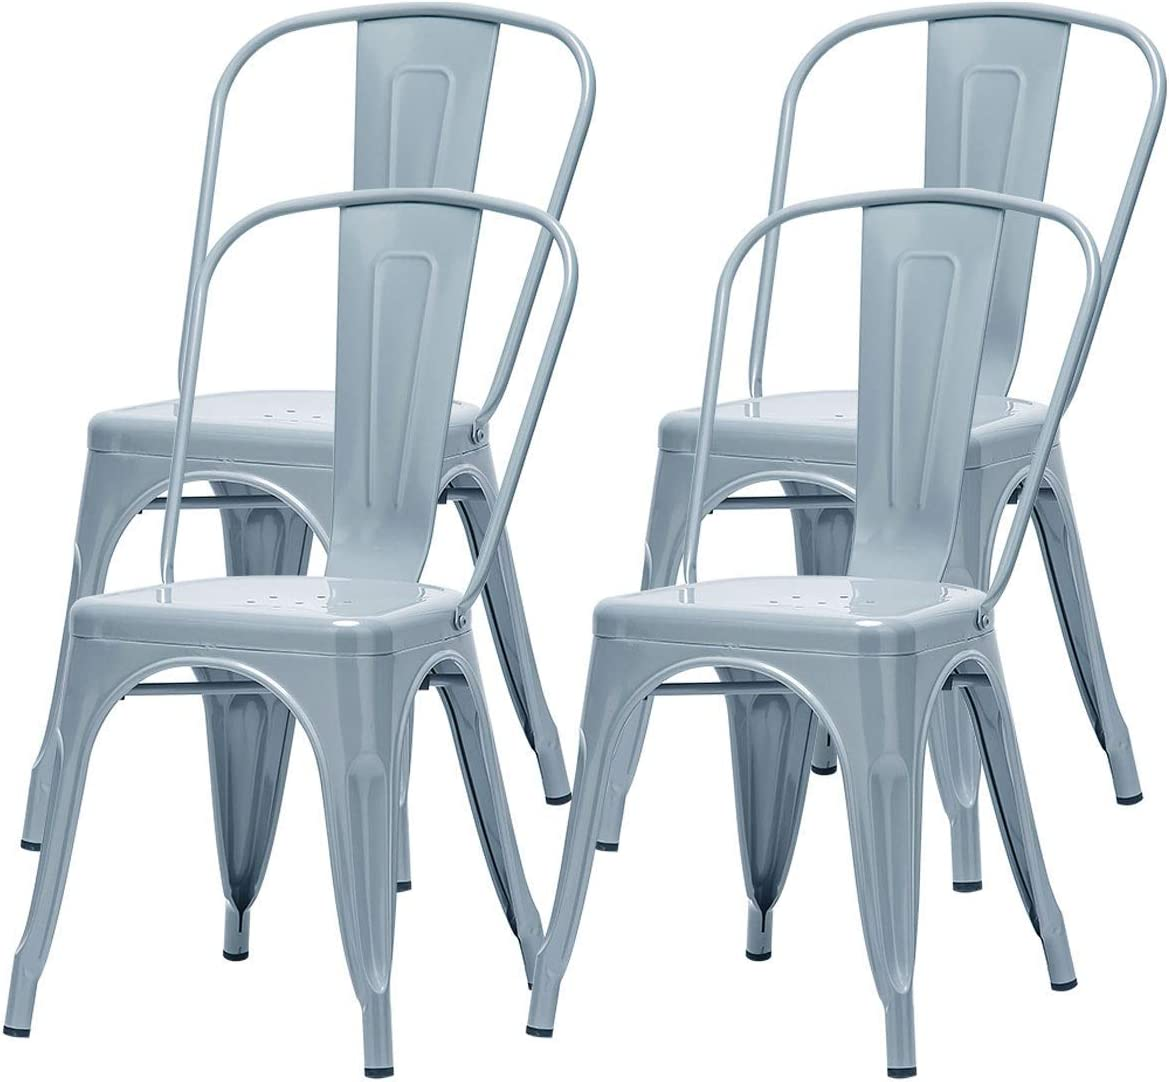 Metal Dining Chair Home Indoor Outdoor Set Sta 4 Virginia Beach Mall Patio of Popular product